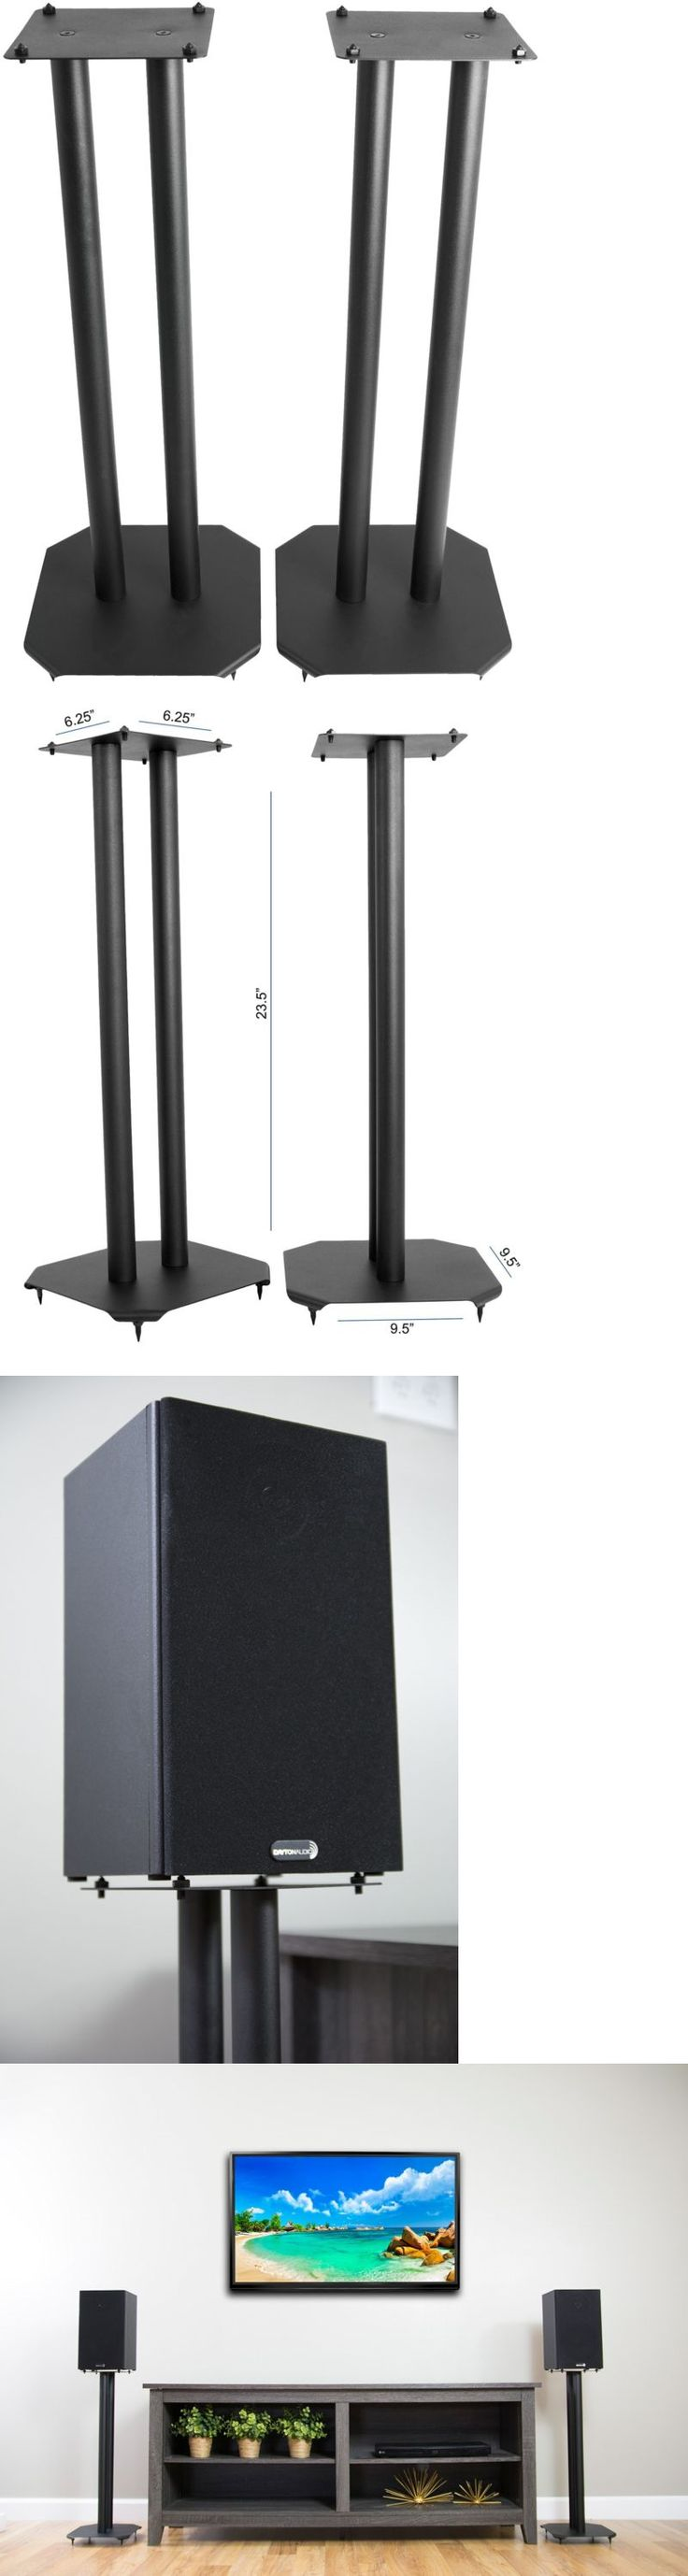 Speaker Mounts and Stands: Floor Speaker Stands Universal For Surround Sound Satellite Book Shelf Speakers -> BUY IT NOW ONLY: $48.59 on eBay!